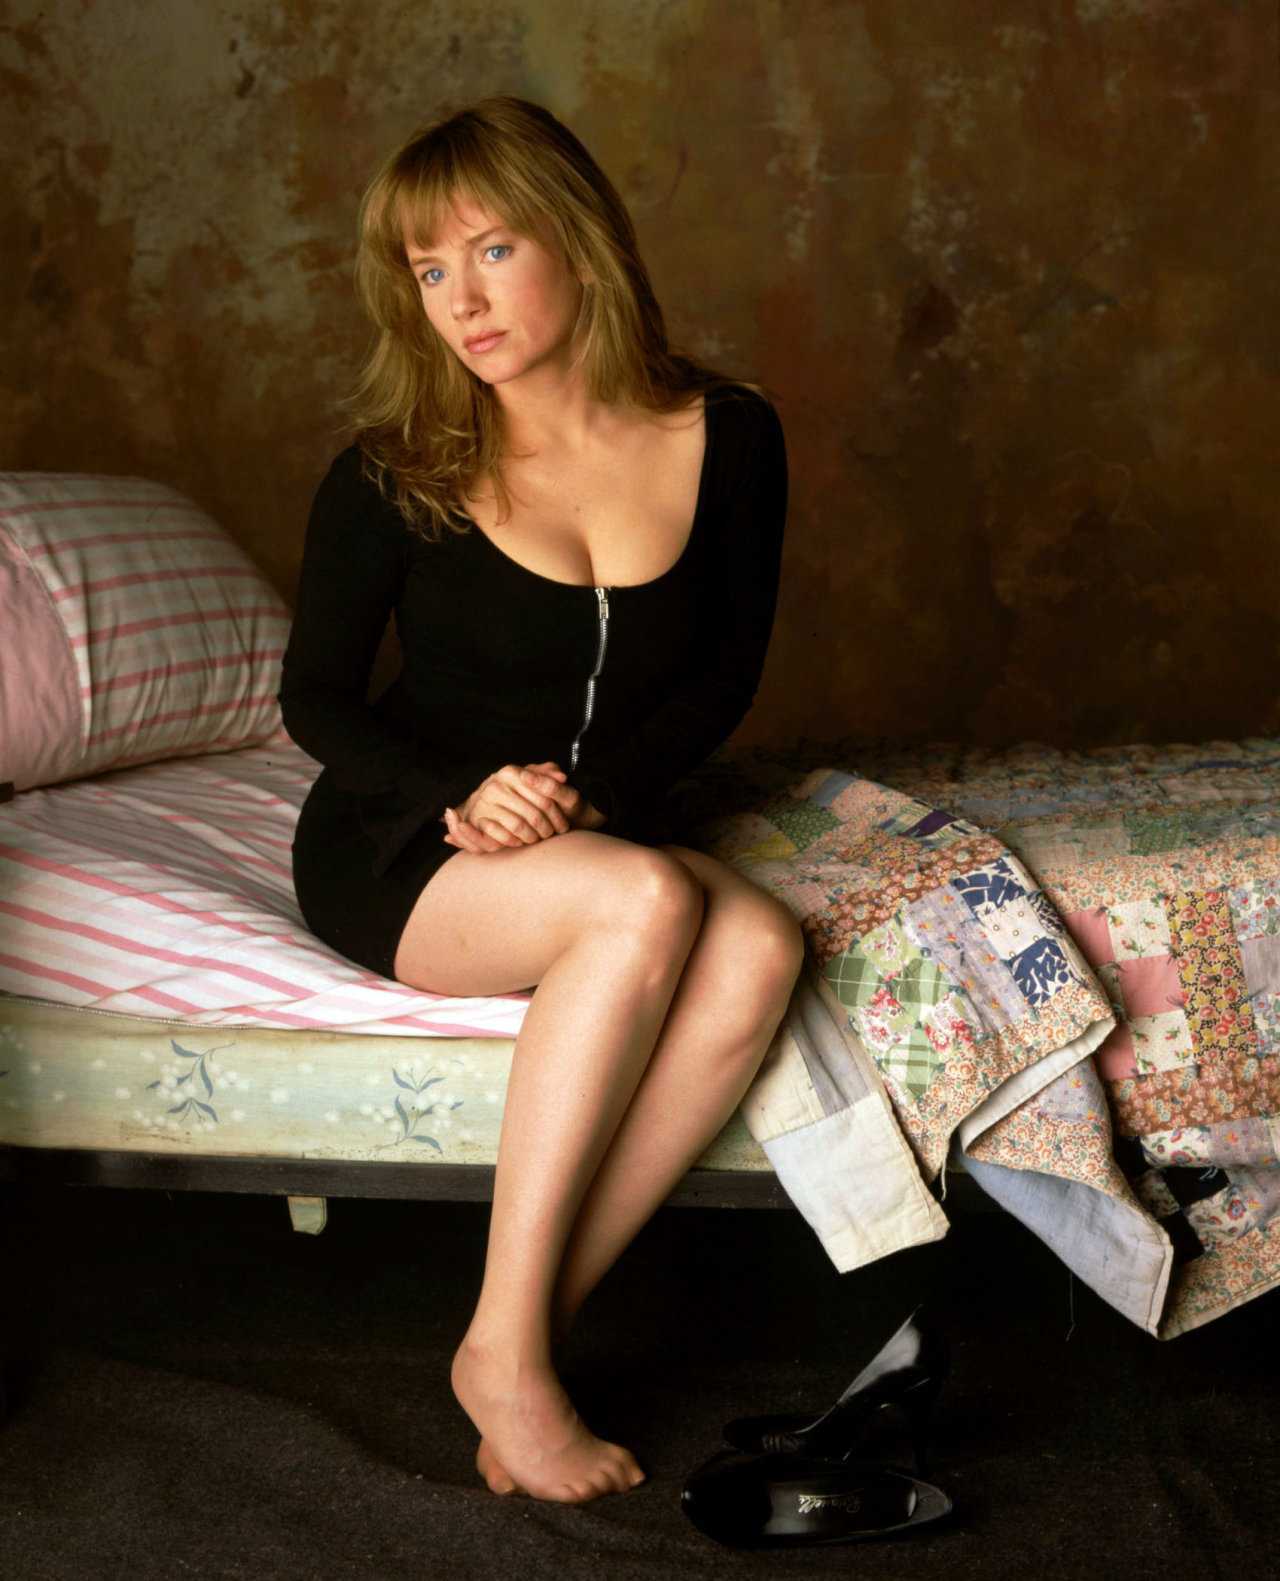 Rebecca De Mornay is a darling American film and television actress